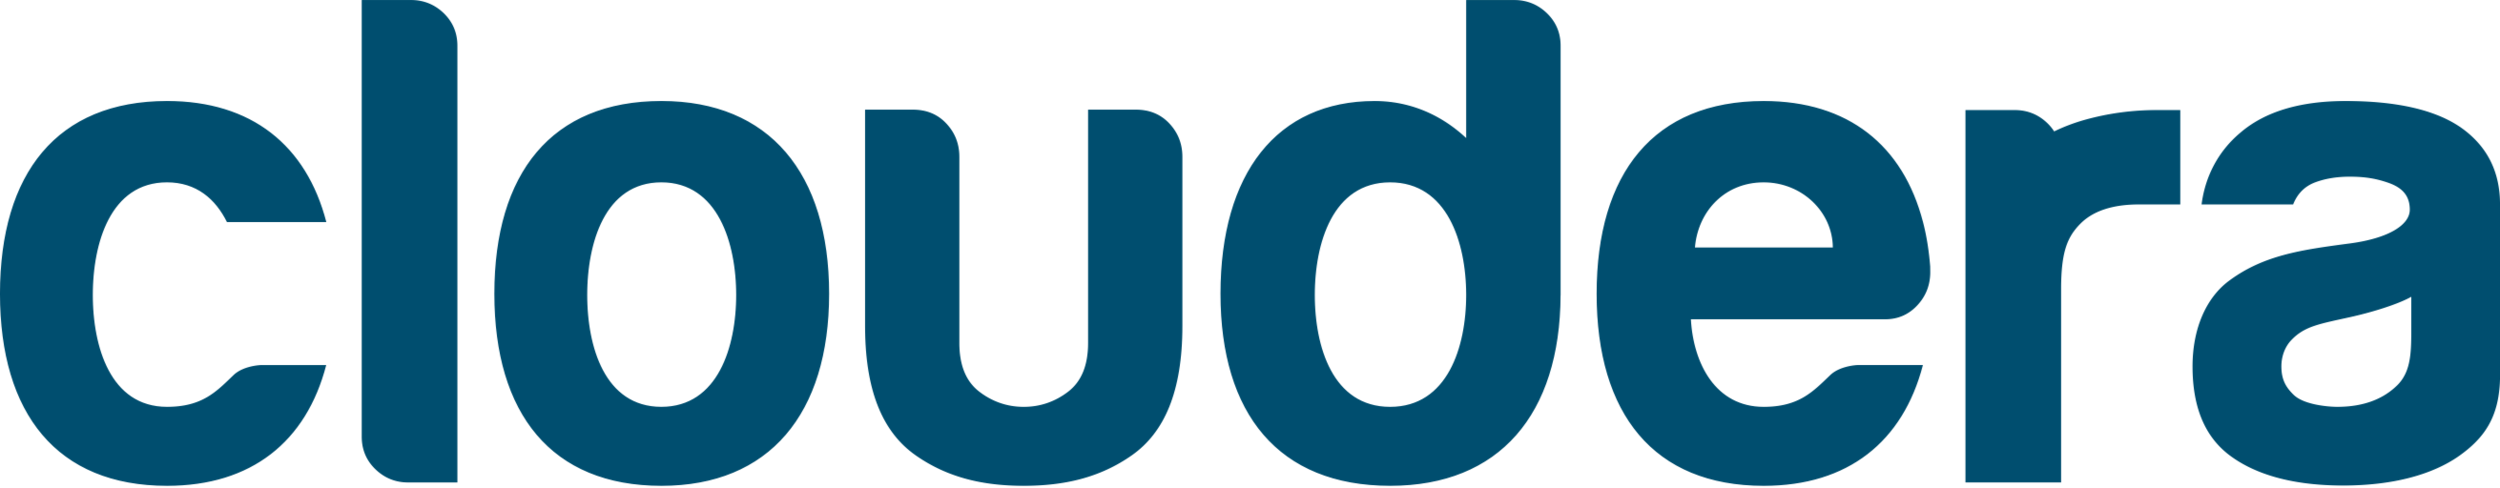 cloudera.png